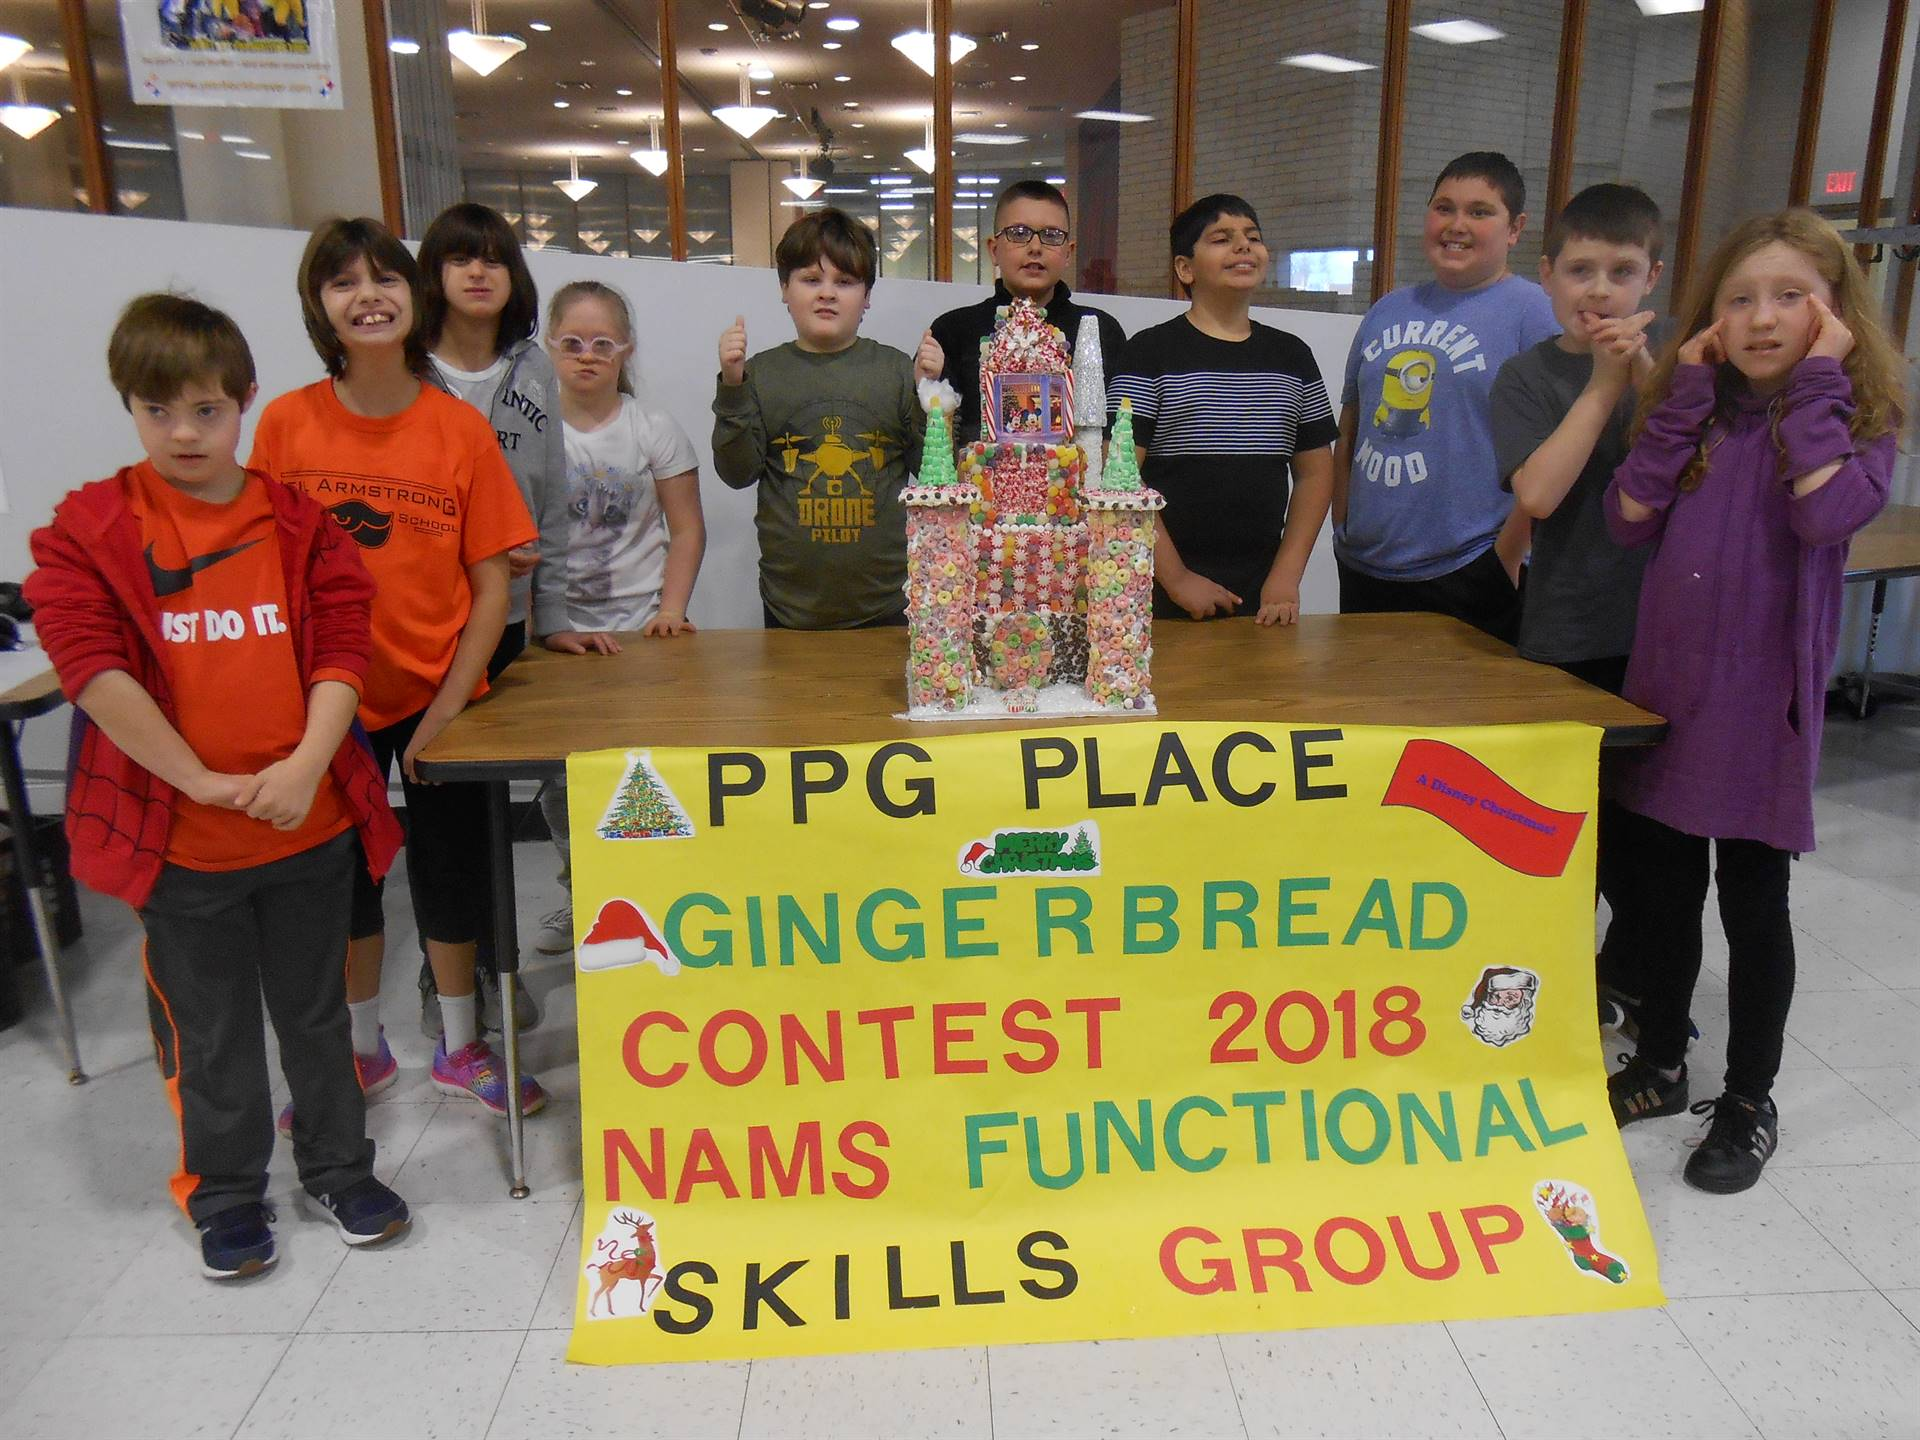 Students with their gingerbread house contest entry